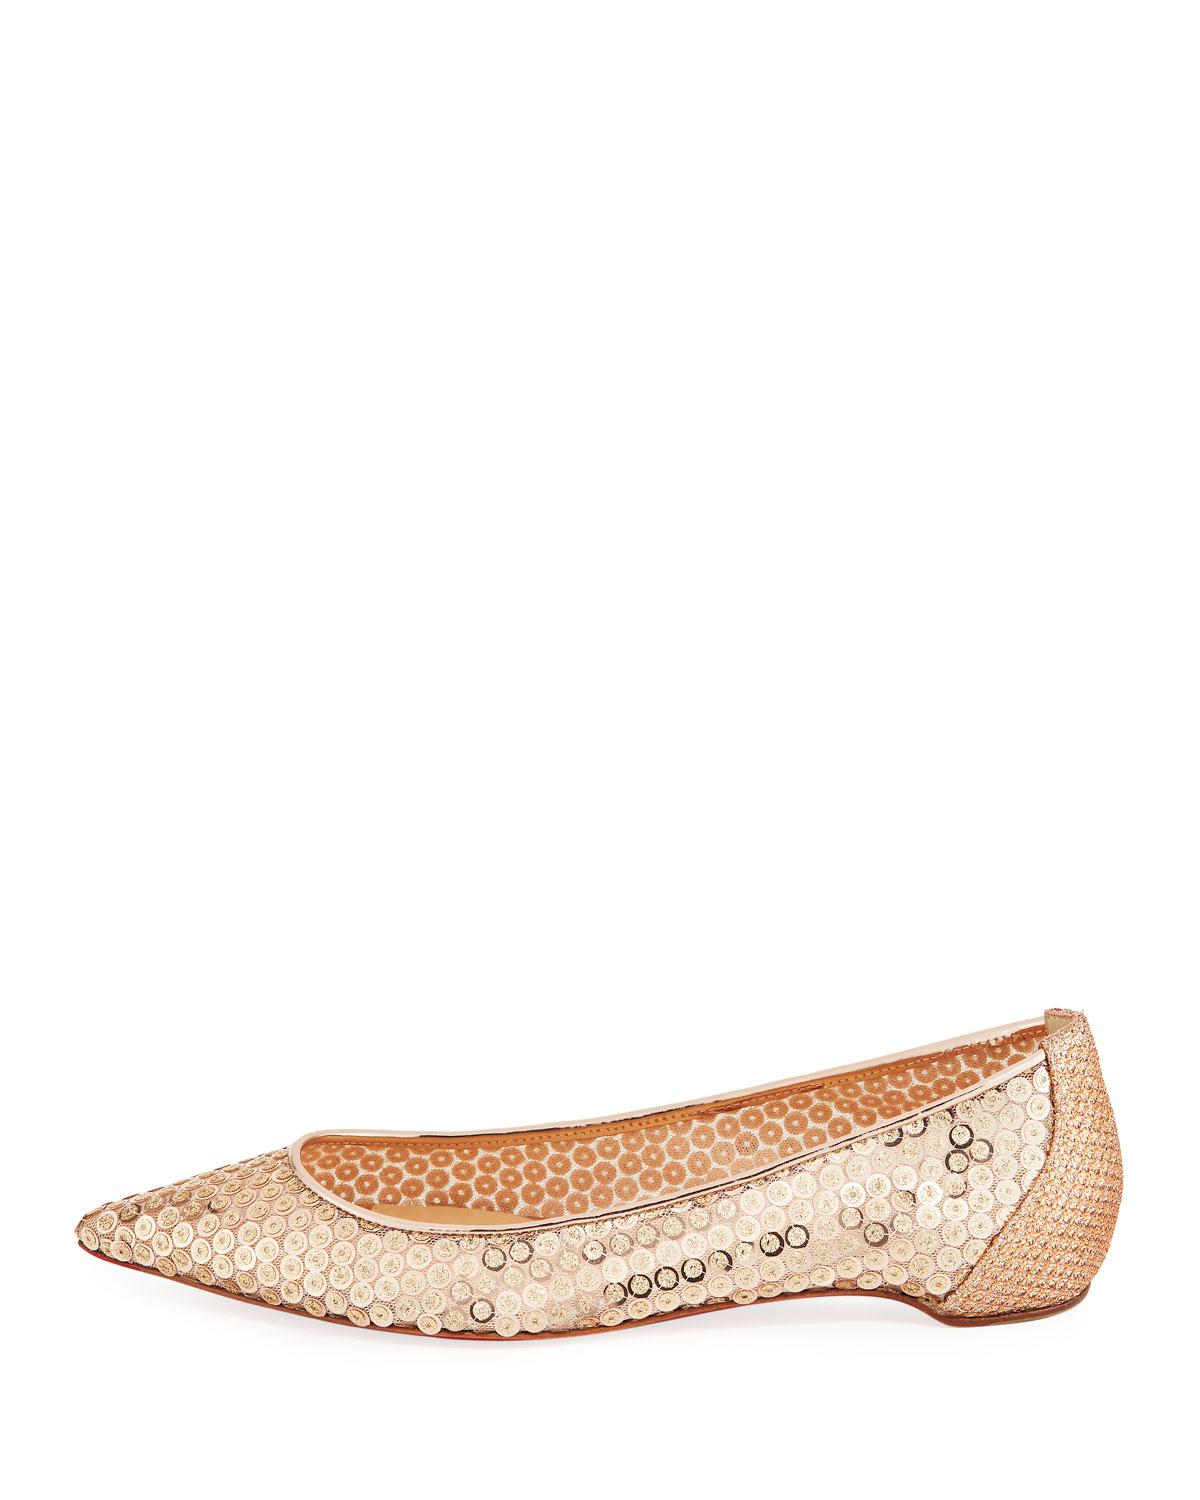 b2c14fda1fd4 ... shopping lyst christian louboutin lace sequined red sole ballet flats  in natural 9d66b d5208